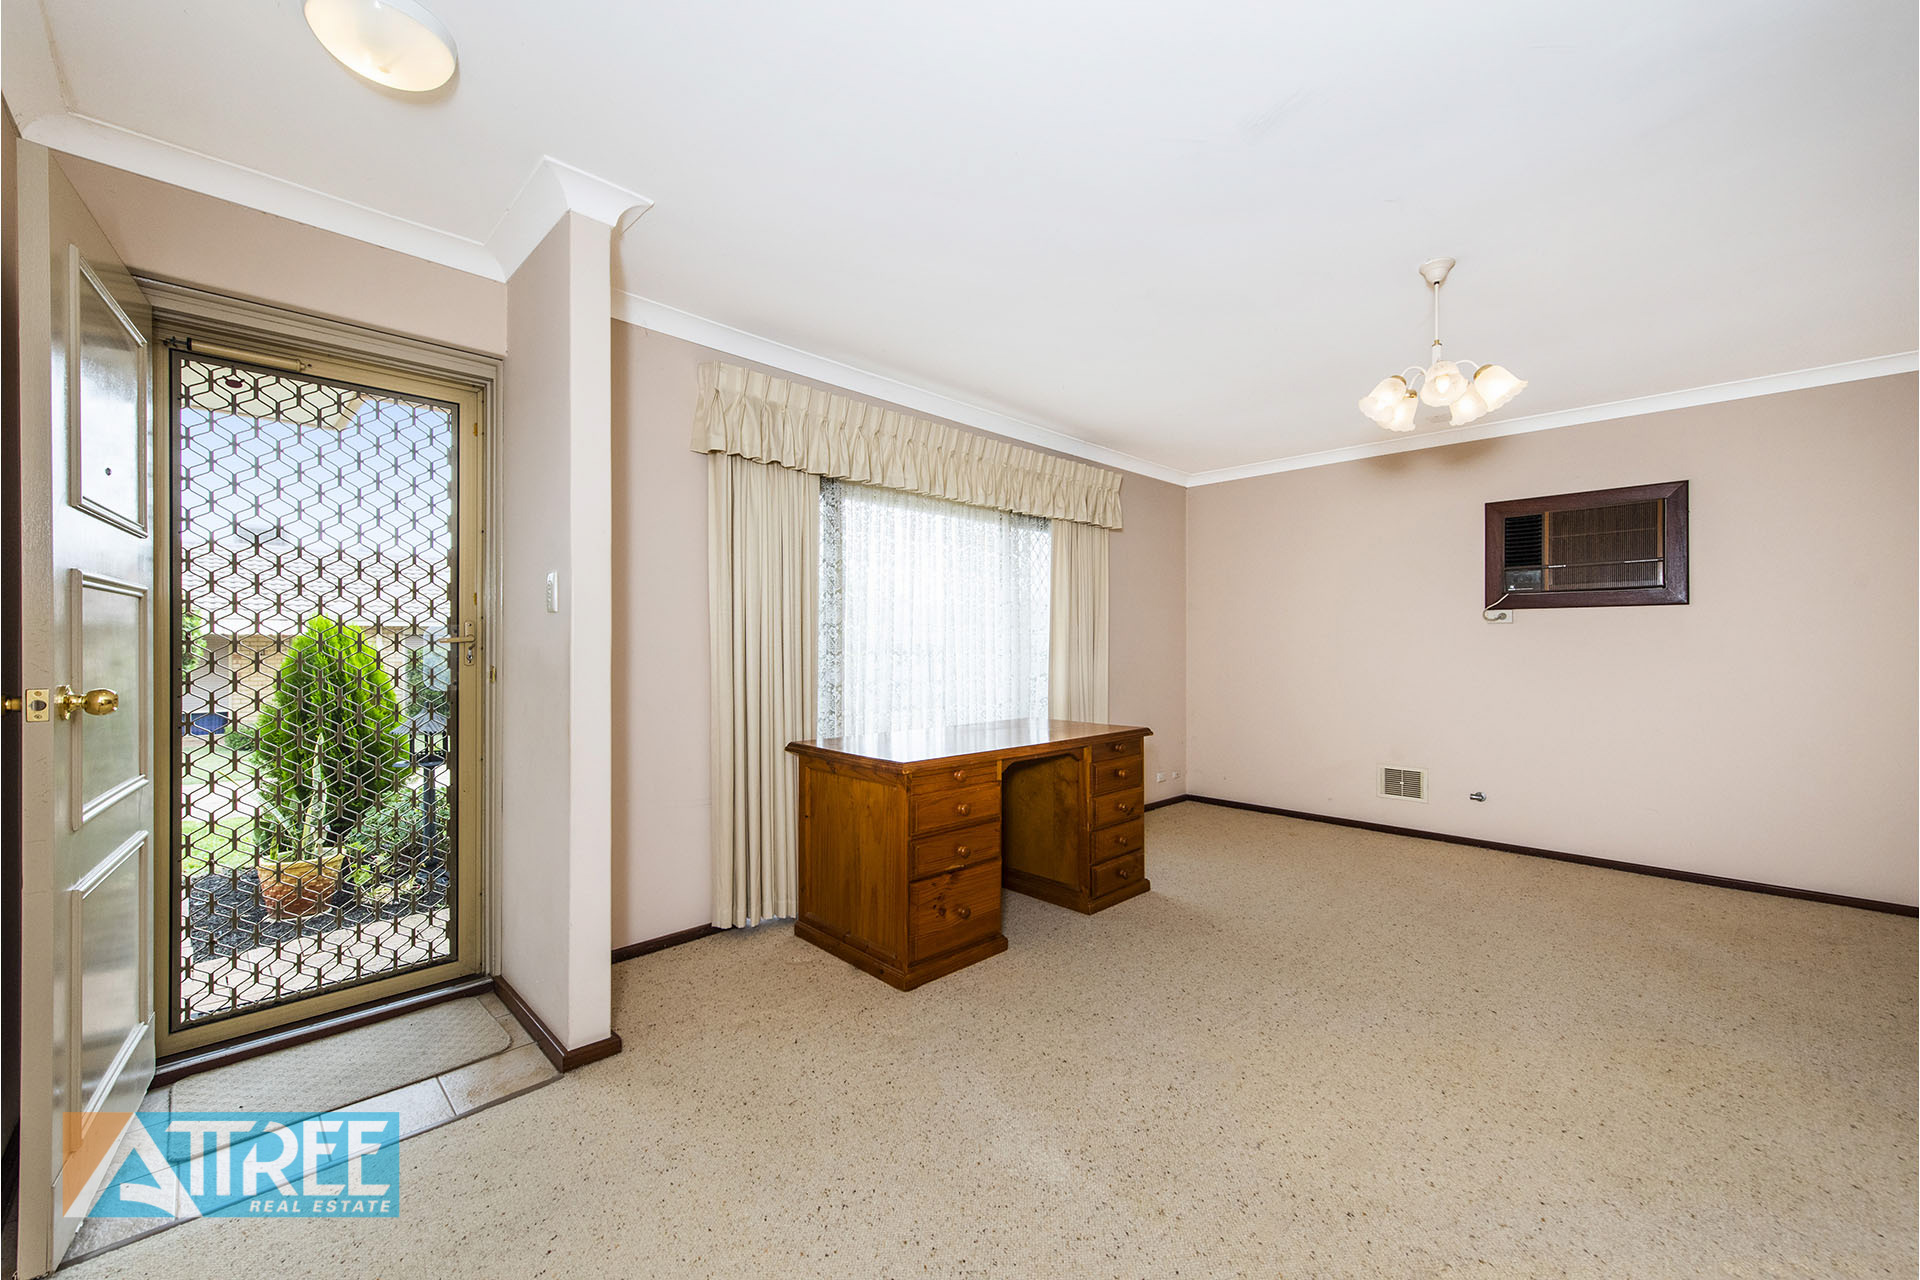 Property for sale in MADDINGTON, 10/17 Attfield Street : Attree Real Estate